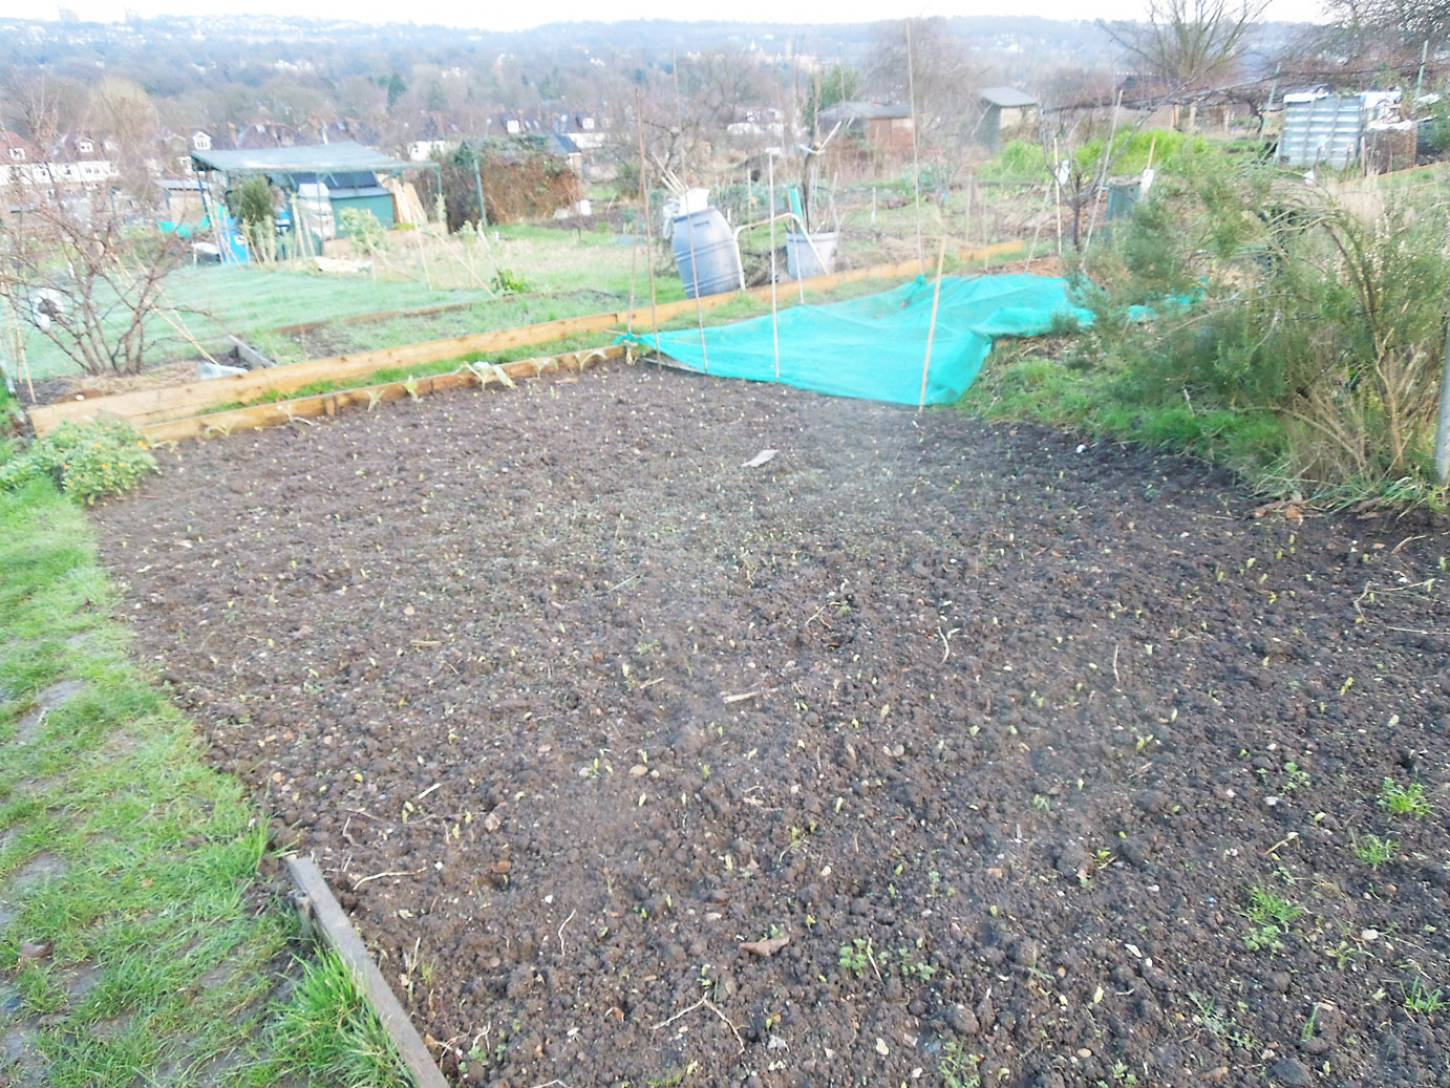 allotment review Jan. '17 - 4:10pm&nbsp;14<sup>th</sup>&nbsp;Jan.&nbsp;'17